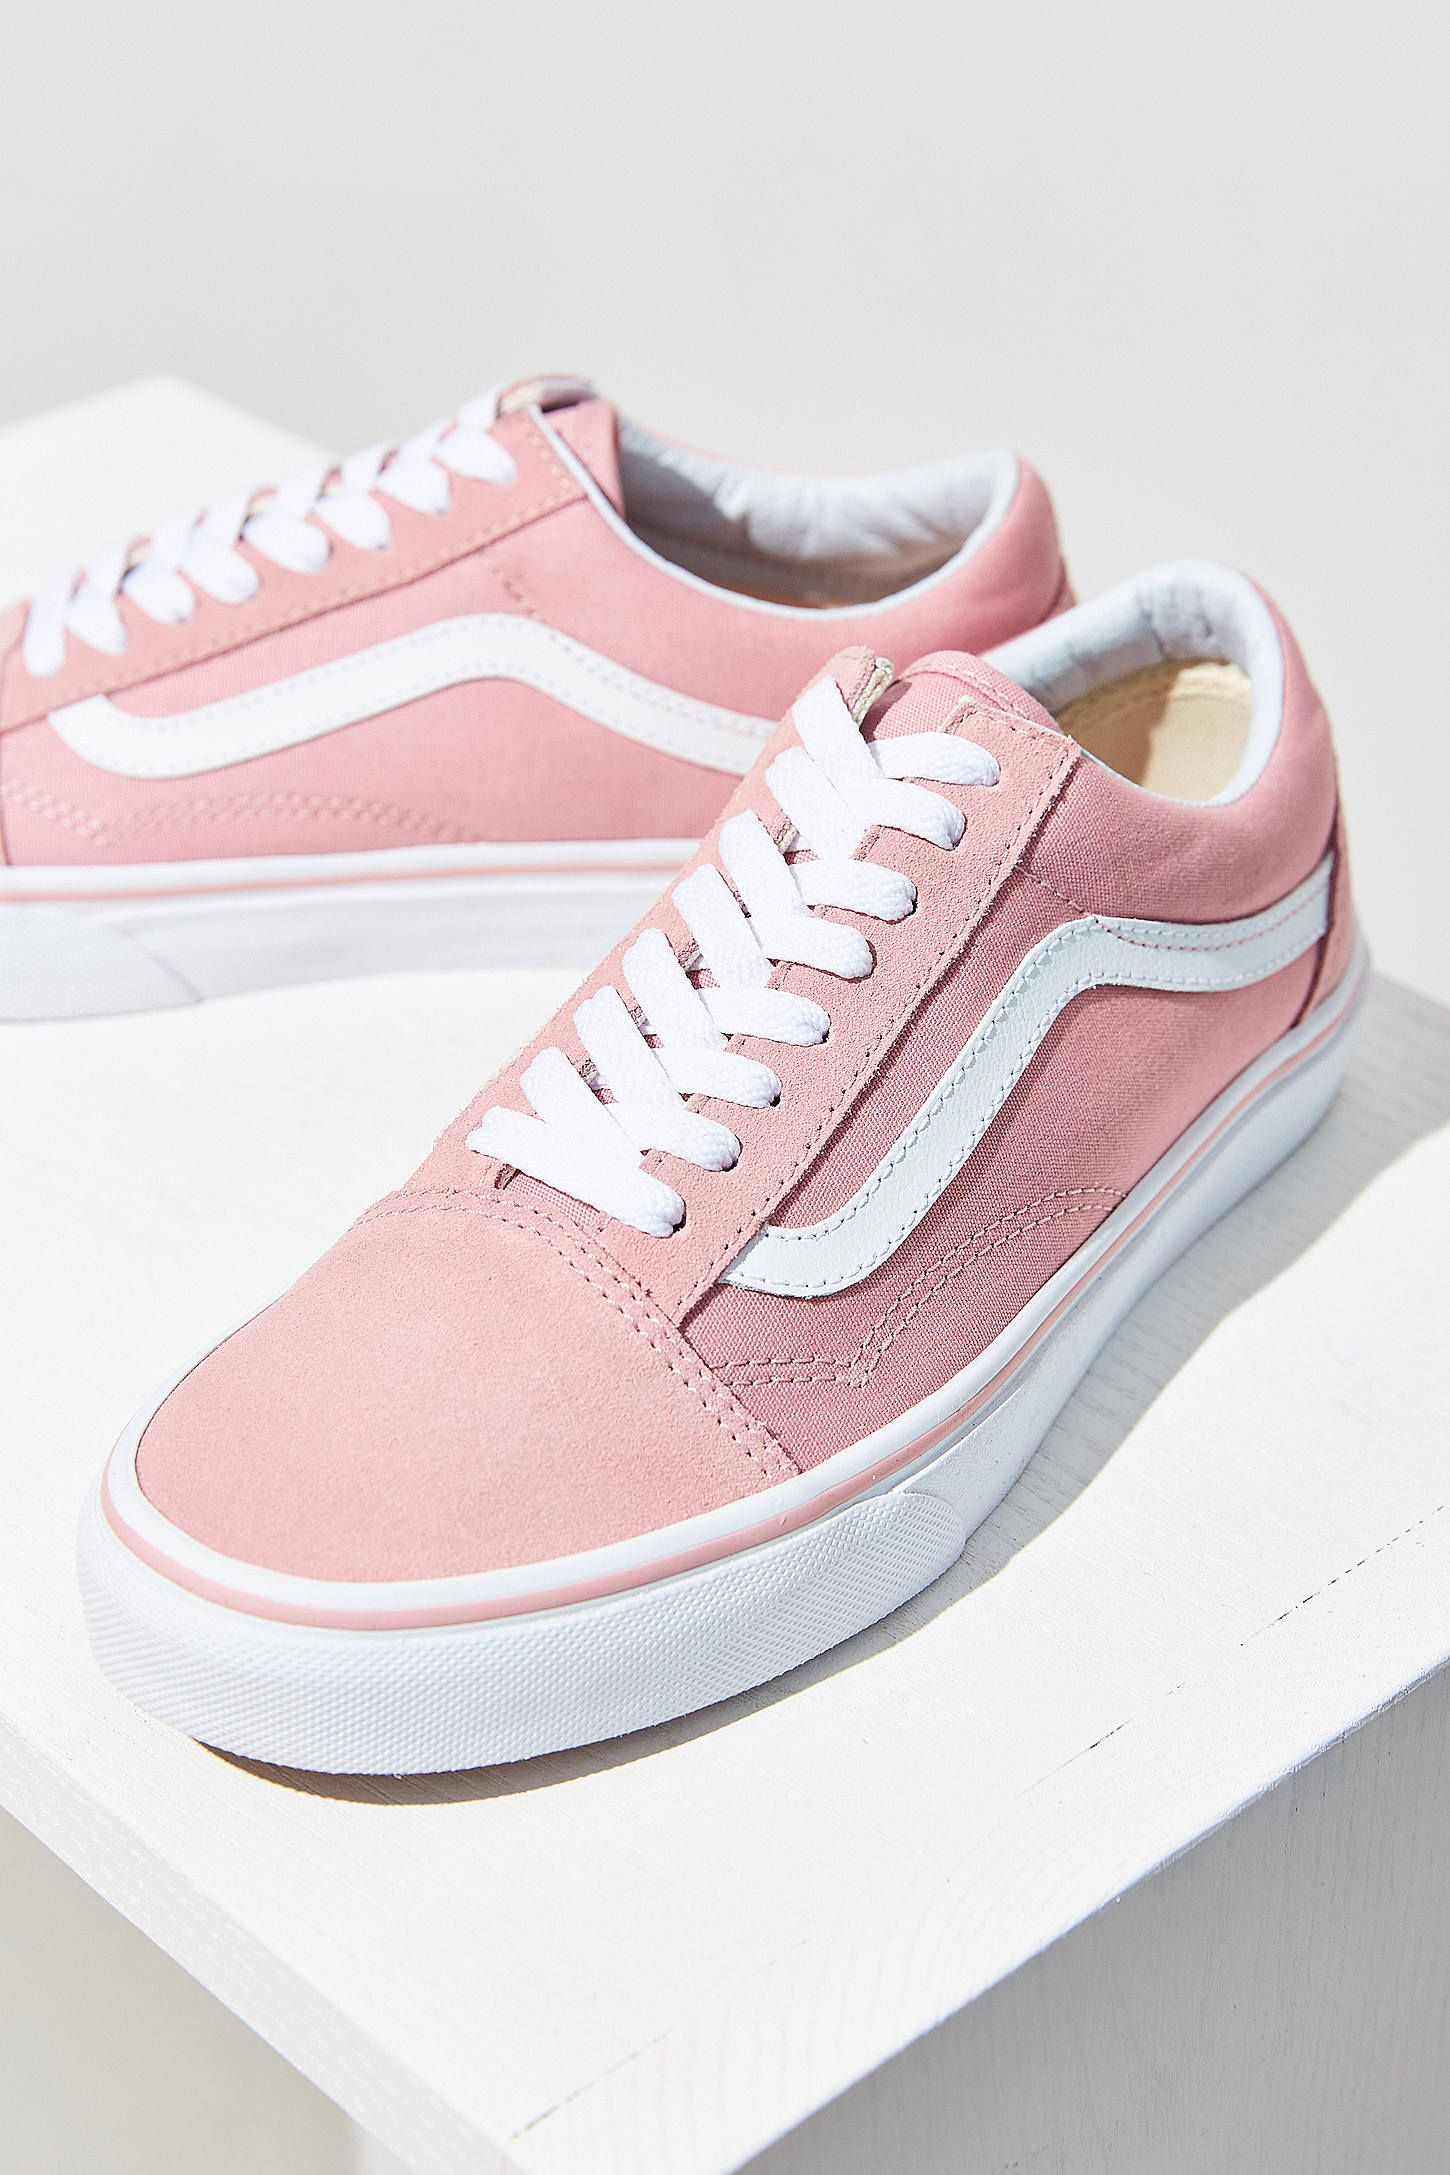 0f4392d0bc6fc1 Shop Vans Pink Old Skool Sneaker at Urban Outfitters today. We carry all the  latest styles